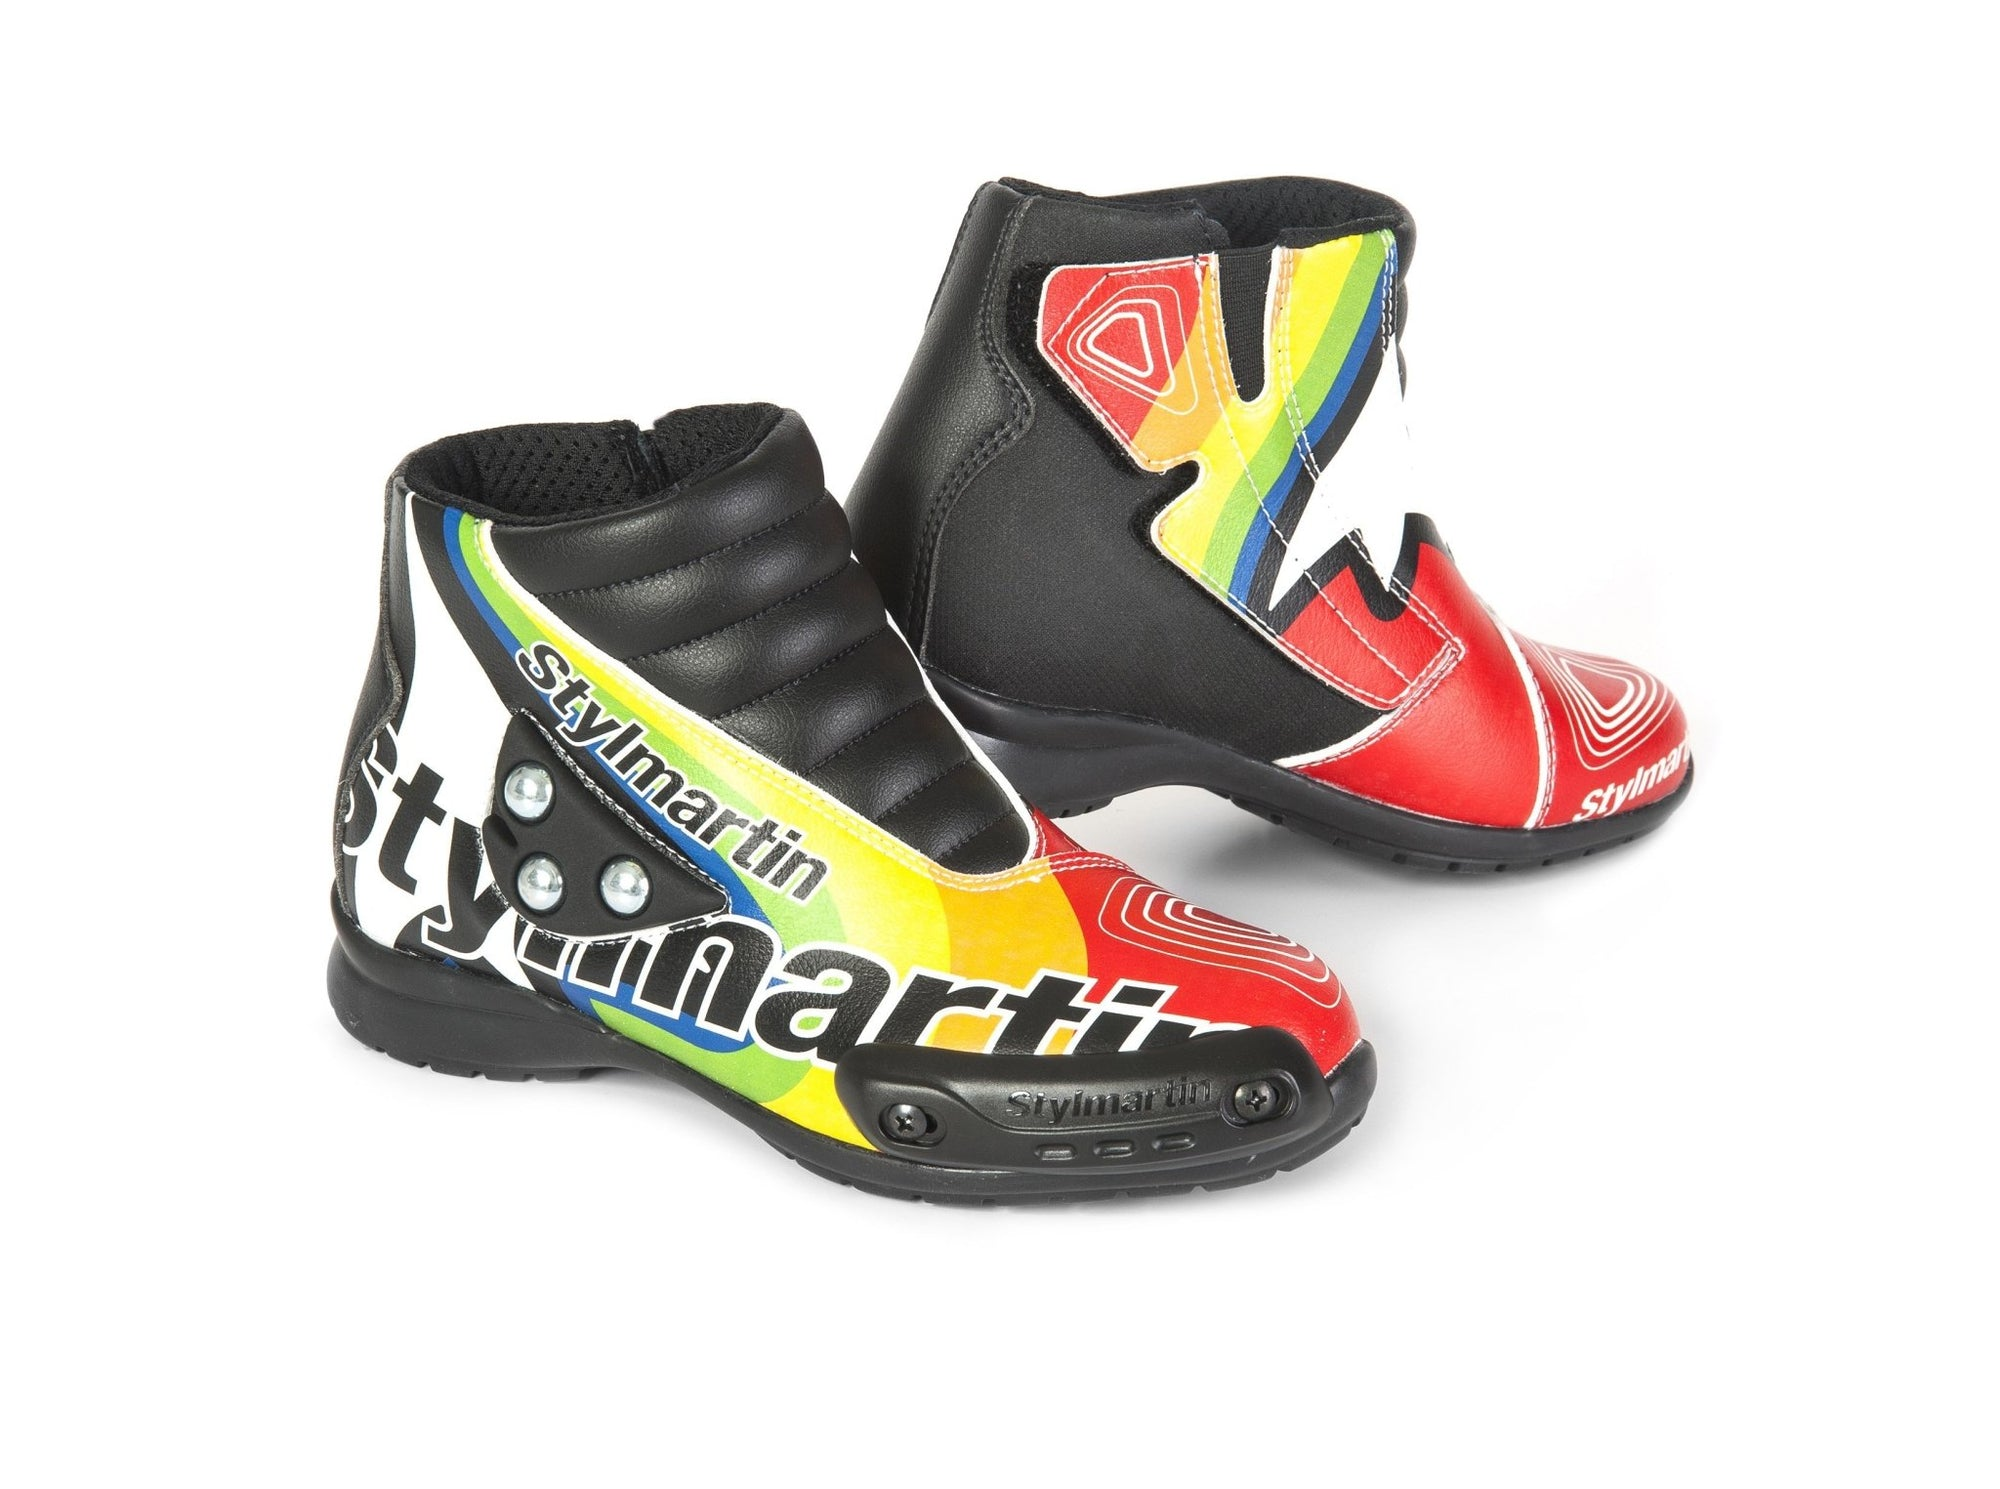 Stylmartin - Stylmartin Speed Jr S1 Minimoto Multicolour - Boots - Salt Flats Clothing